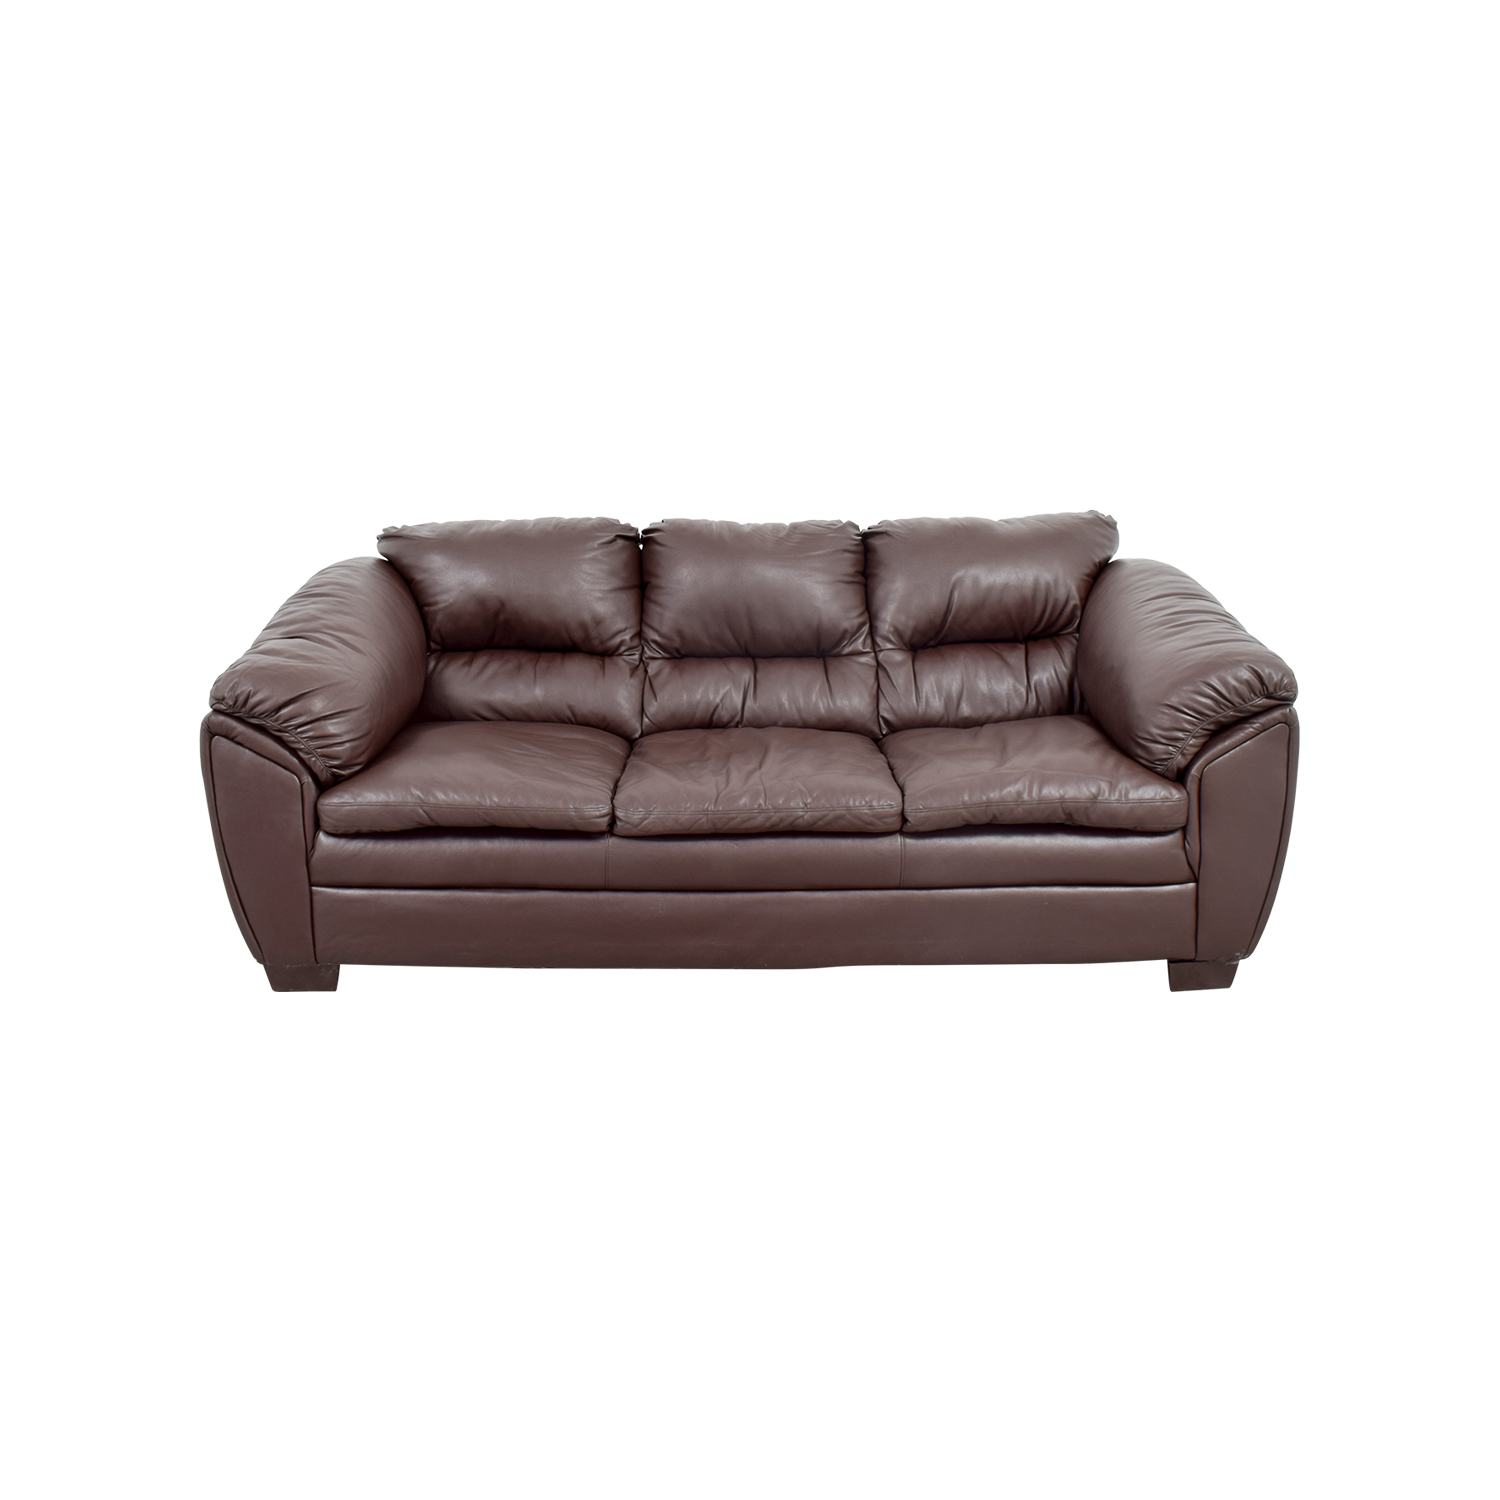 Sofa Leather Workshop: Buy And Sell Used Furniture